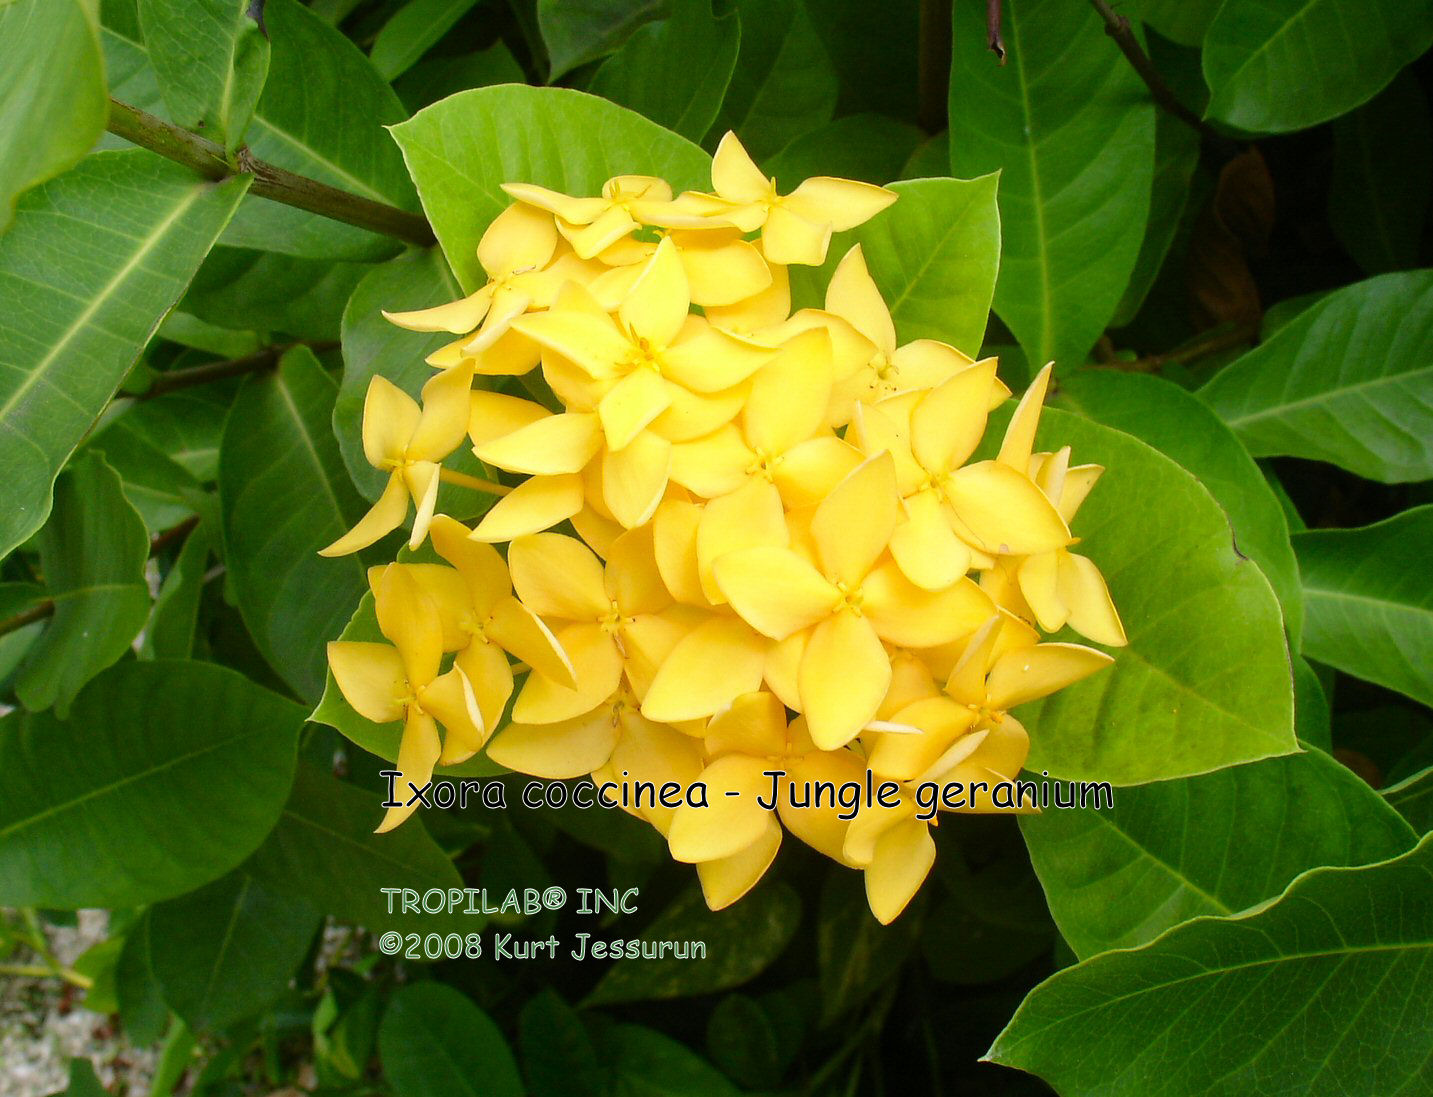 Ixora coccinea - Jungle geranium yellow